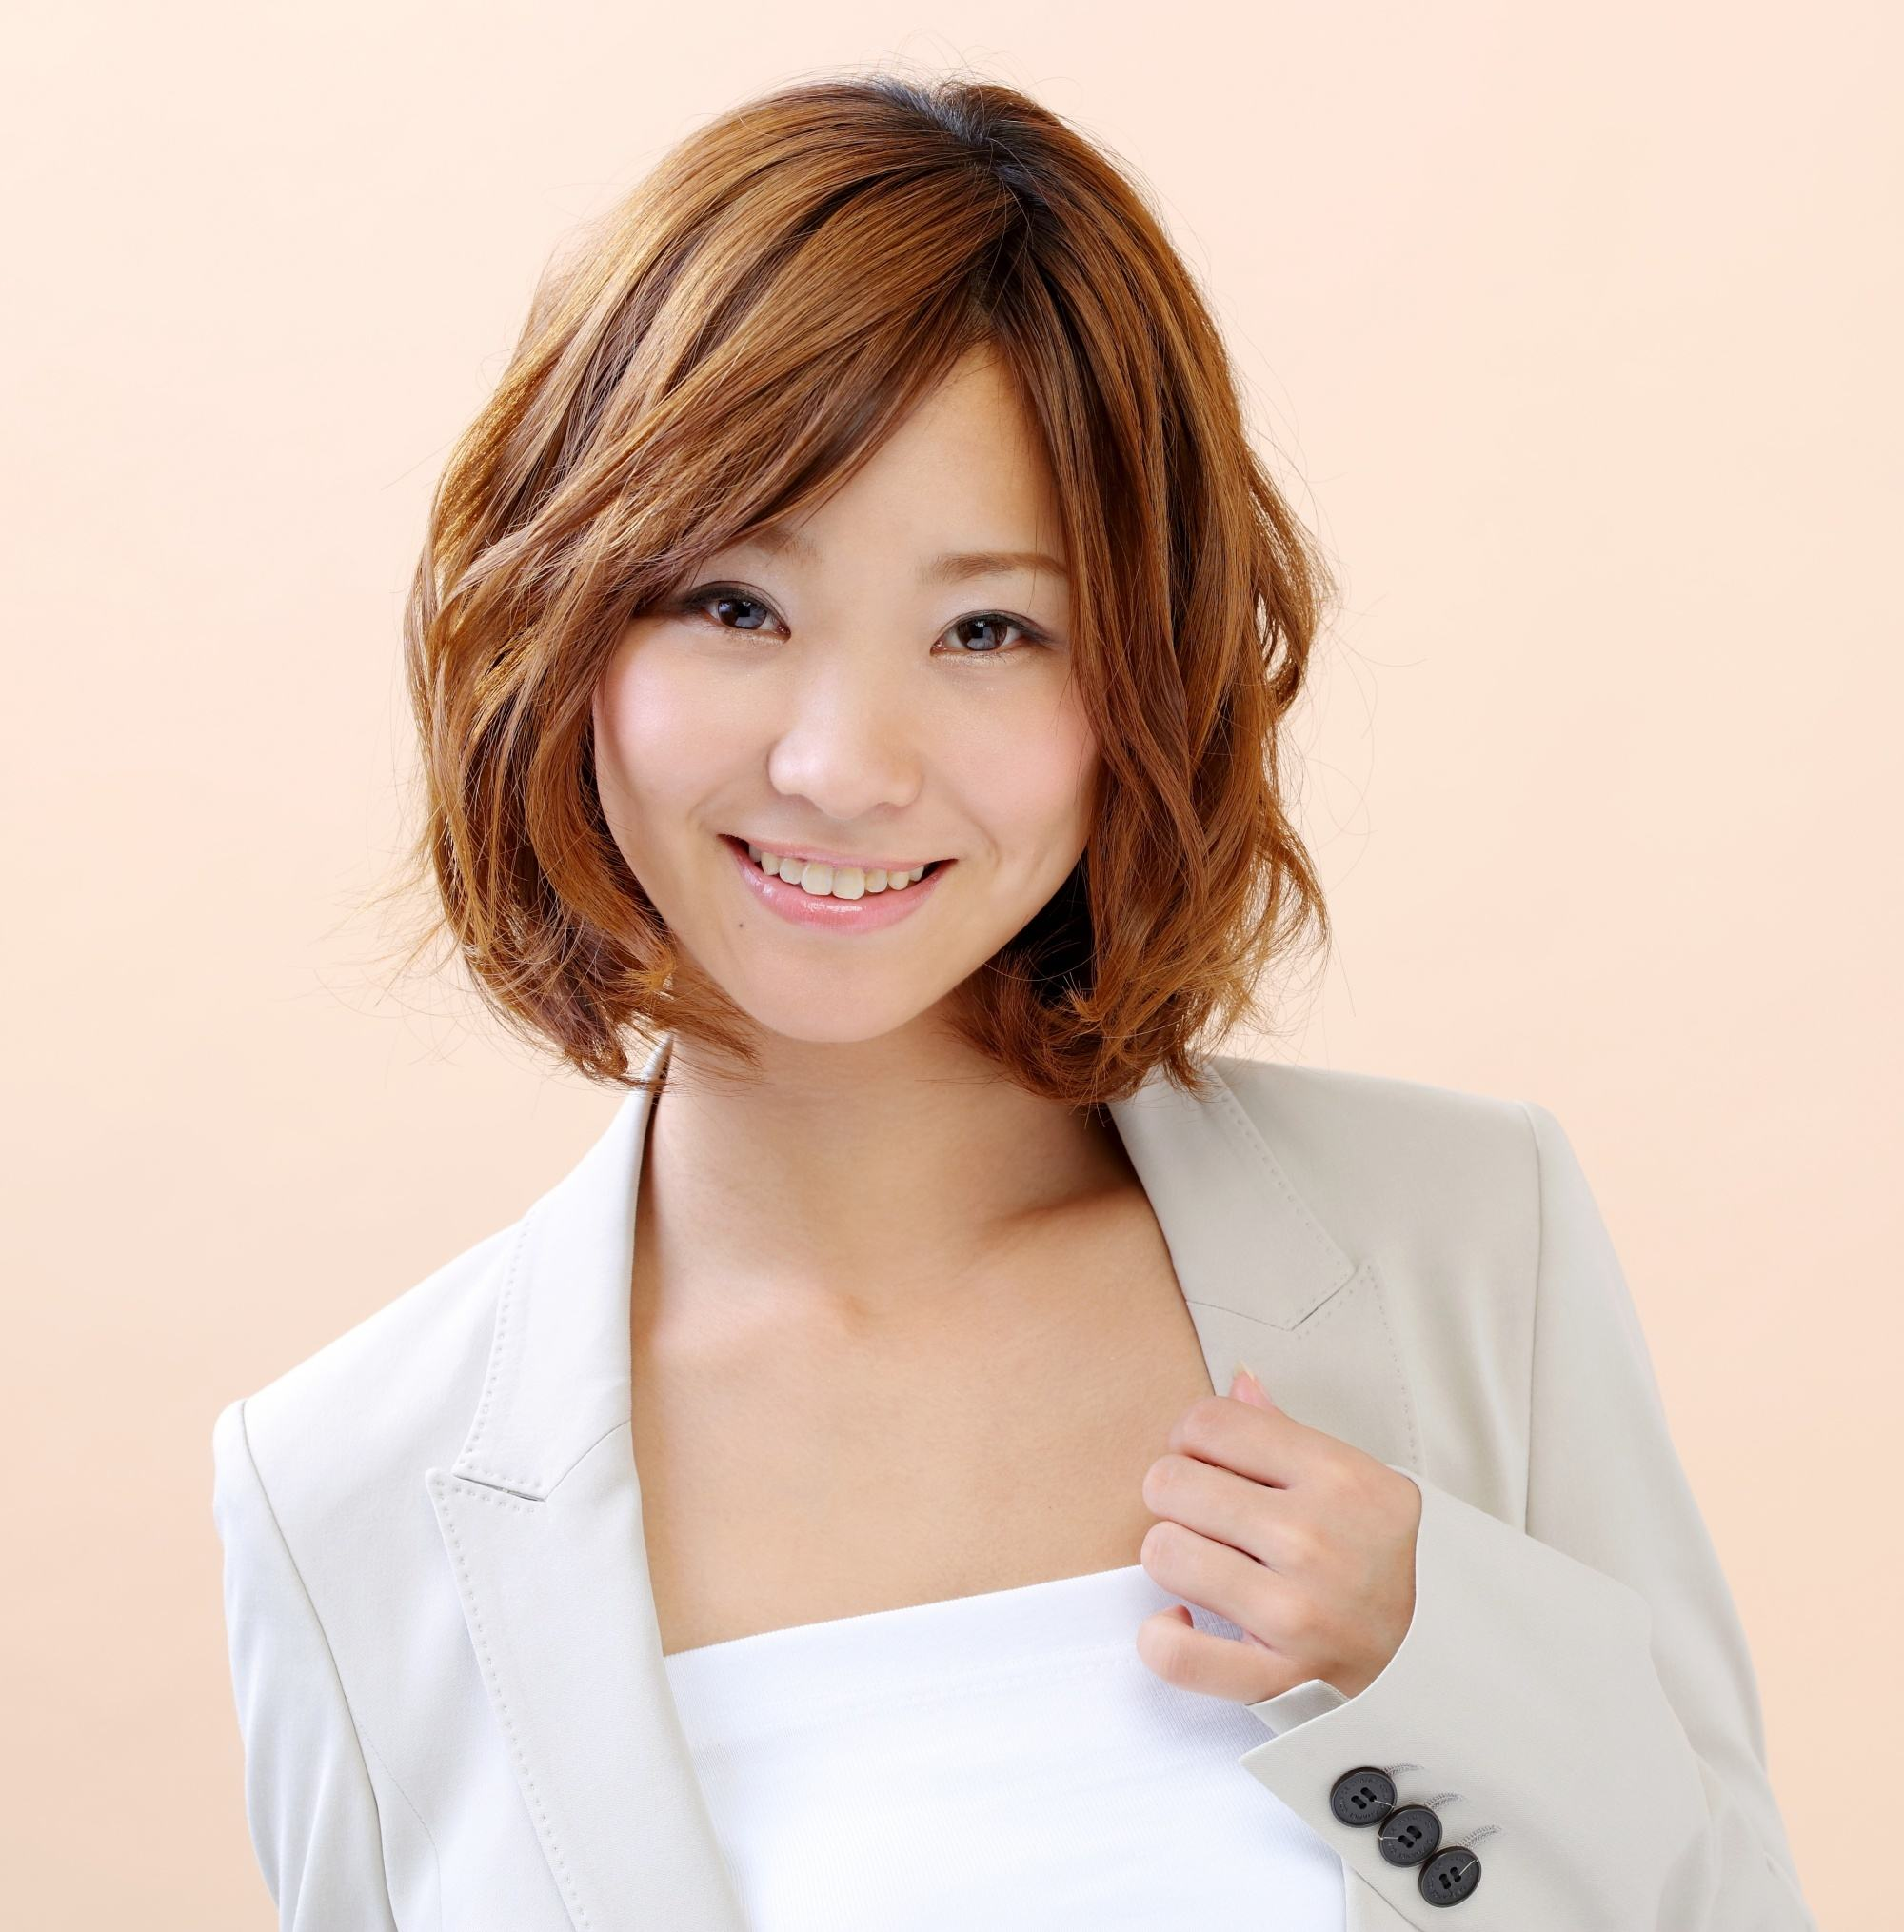 Japanese woman with brown short wavy hair smiling